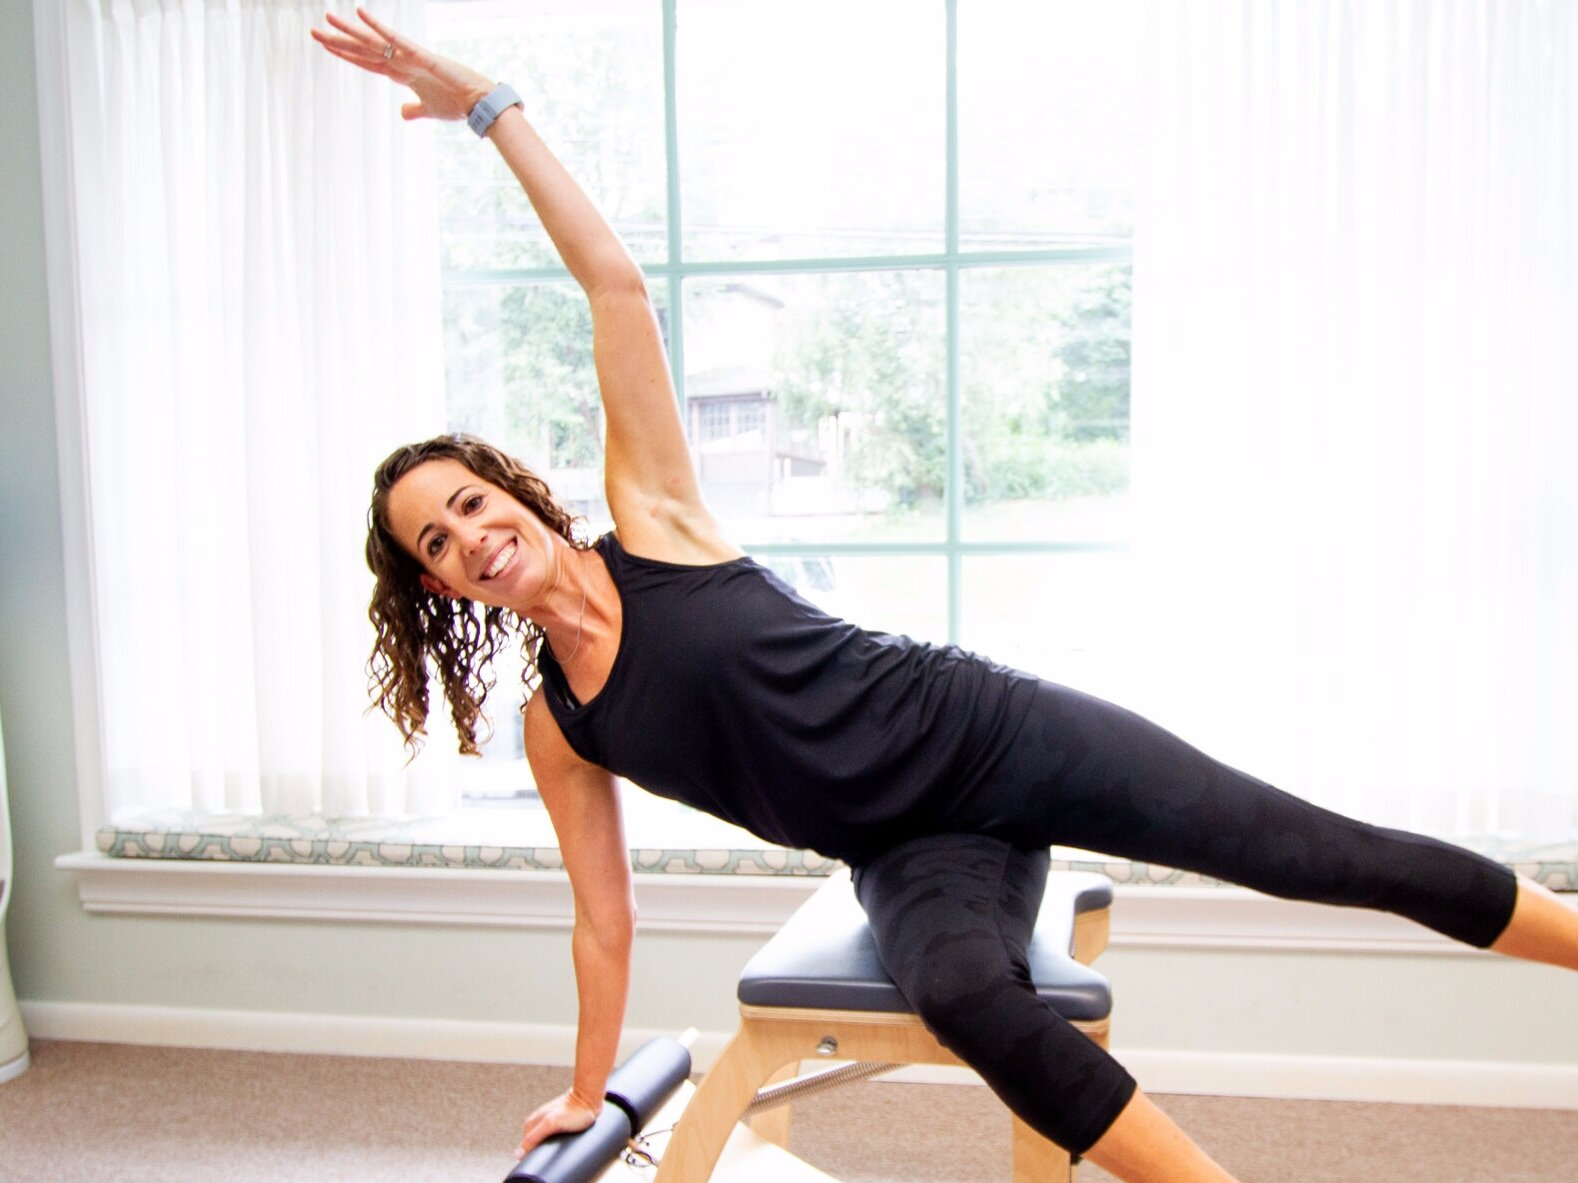 jackie ladden - who: pilates instructor and physical therapisthometown: phillyfavorite class to teach: piFLOWfavorite exercise: curtsey lungeinteresting fact: was introduced to pilates by her mom, as a way to spend time together.